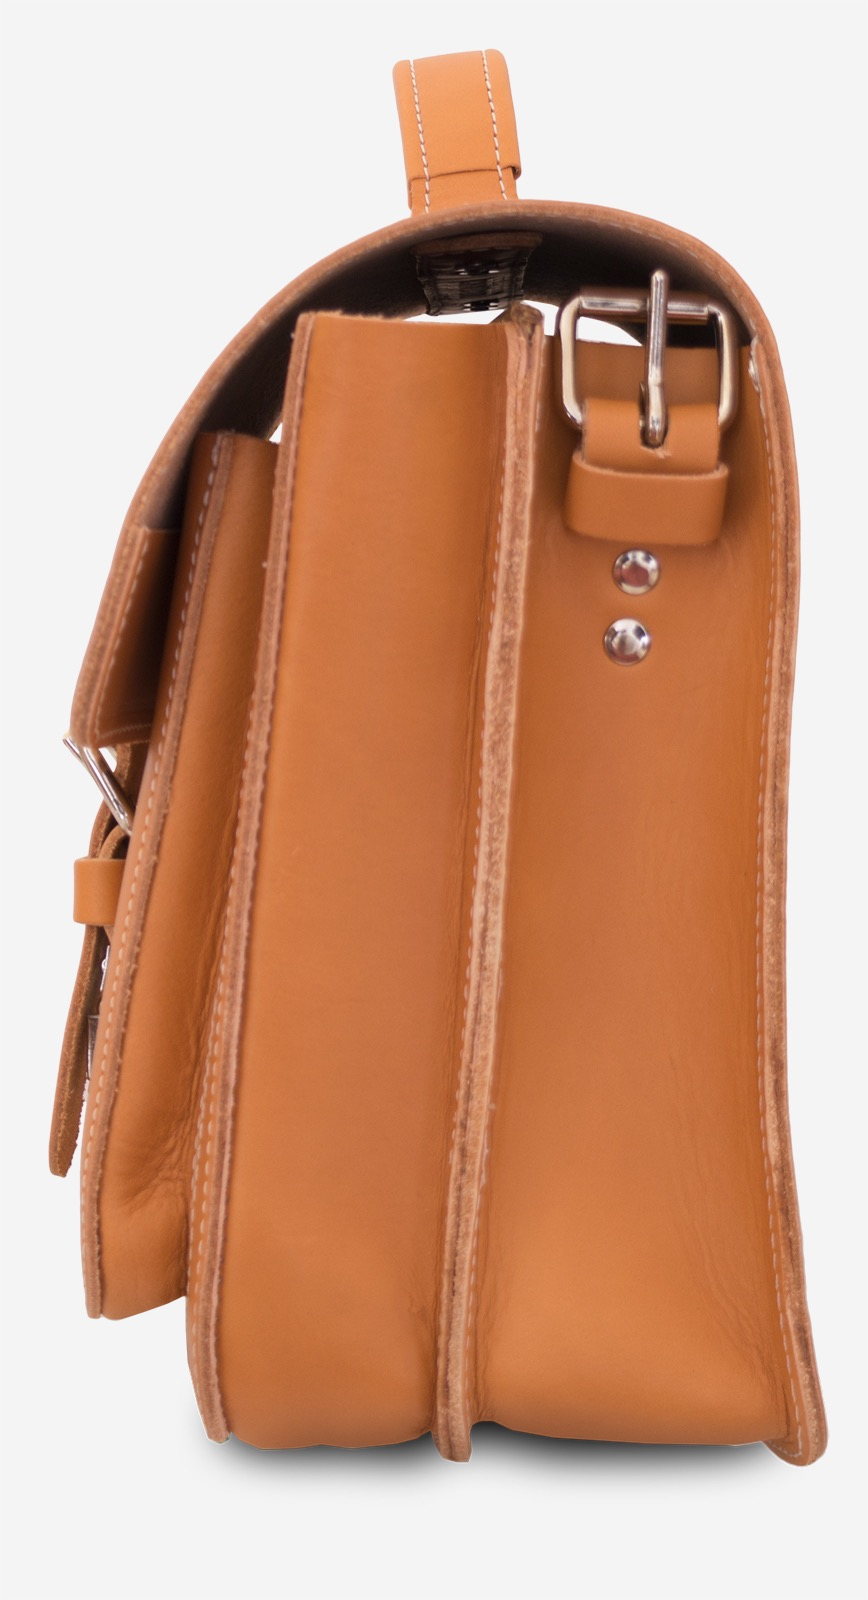 Side view of the student tan leather satchel with 2 compartments and a front pocket.